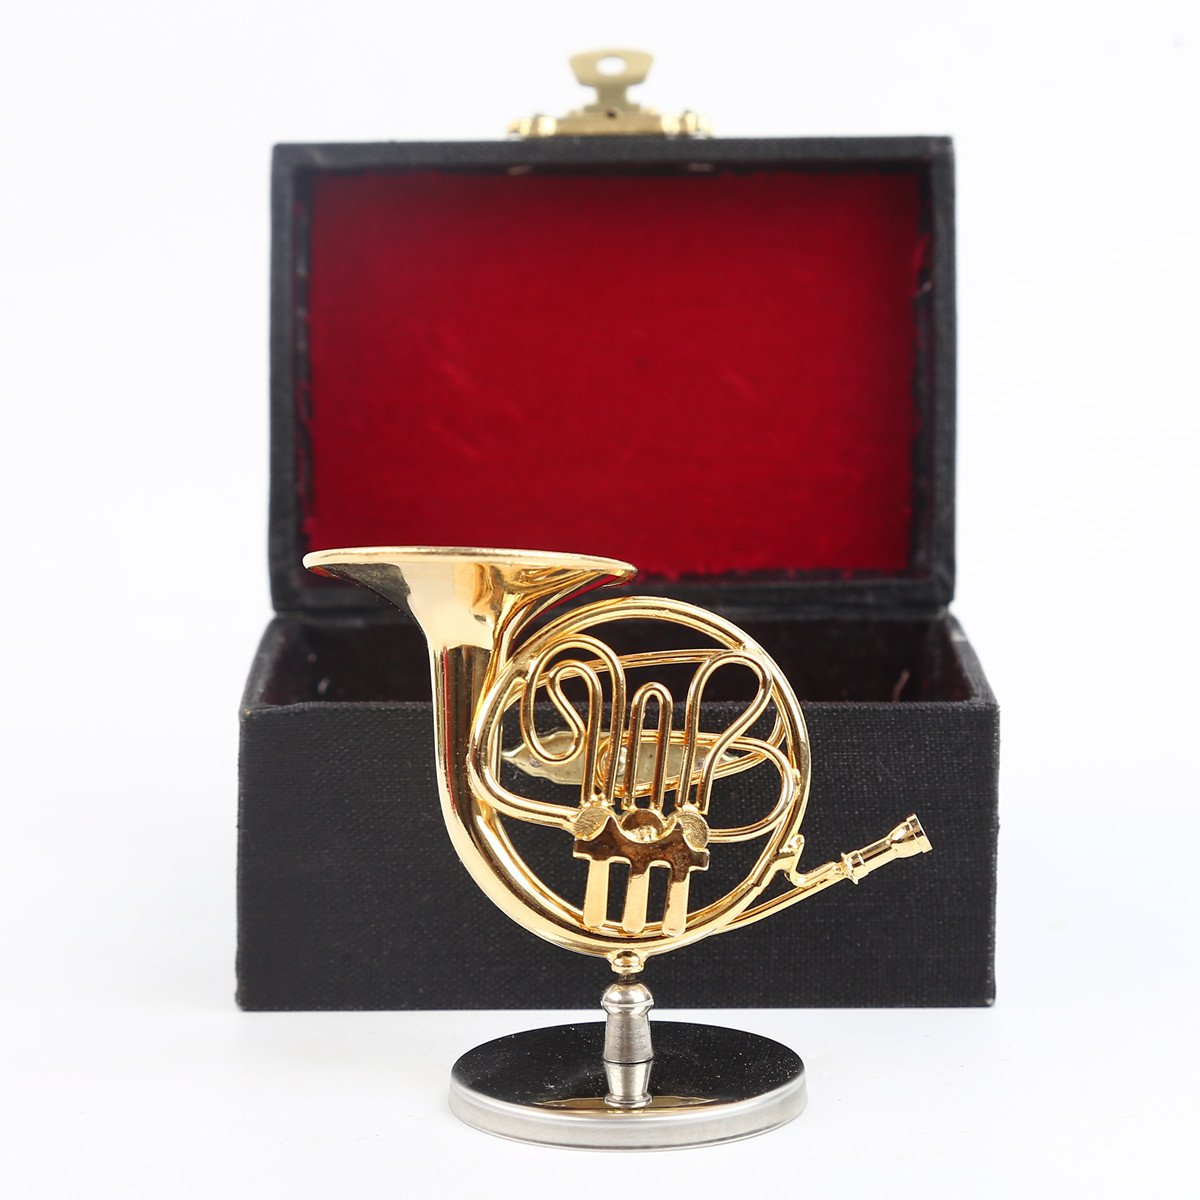 Seawoo Copper Miniature French Horn with Stand and Case Mini Musical Instrument Miniature Dollhouse Model Mini French Horn Home decoration (2.76''x1.38'') by Seawoo (Image #4)